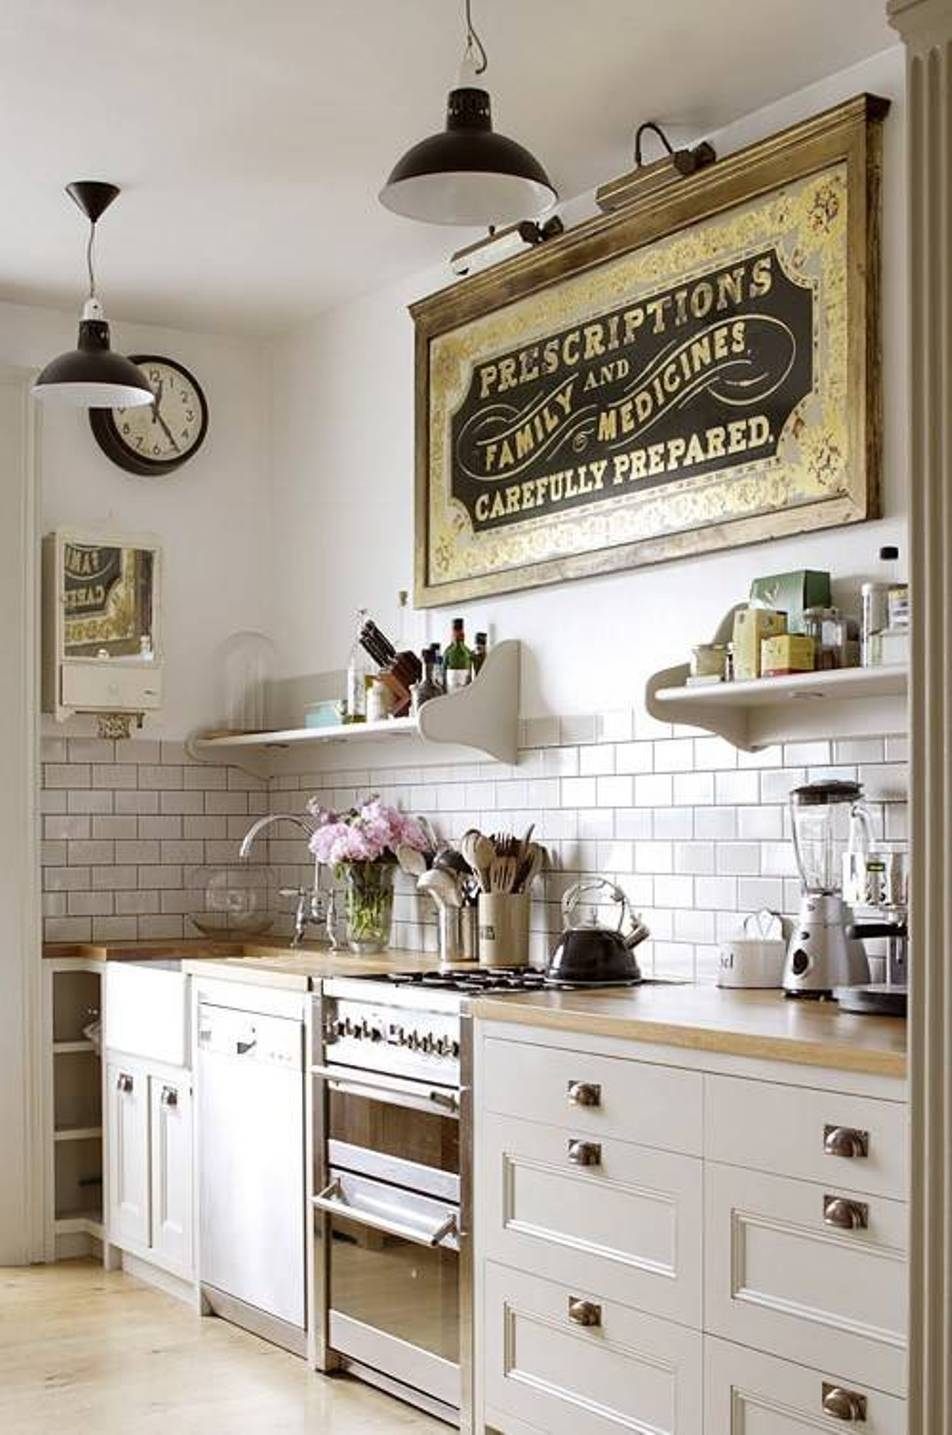 Kitchen : Kitchen Farmhouse Kitchen Decor Ideas With Brick Kitchen In Latest Farmhouse Wall Art (View 20 of 25)